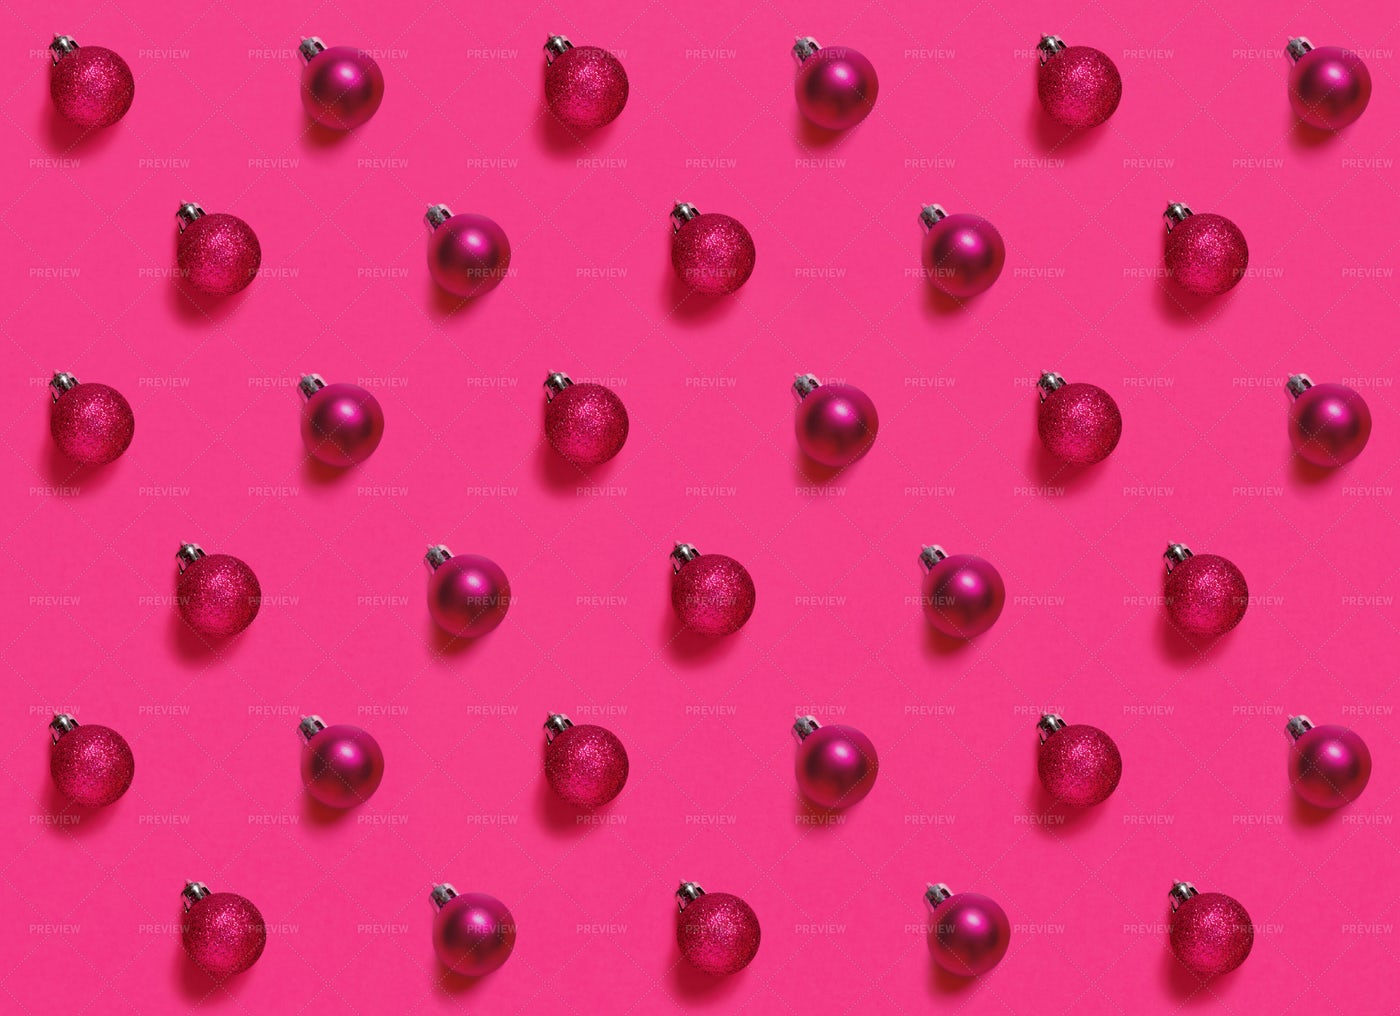 Pink Christmas Ornaments Pattern: Stock Photos